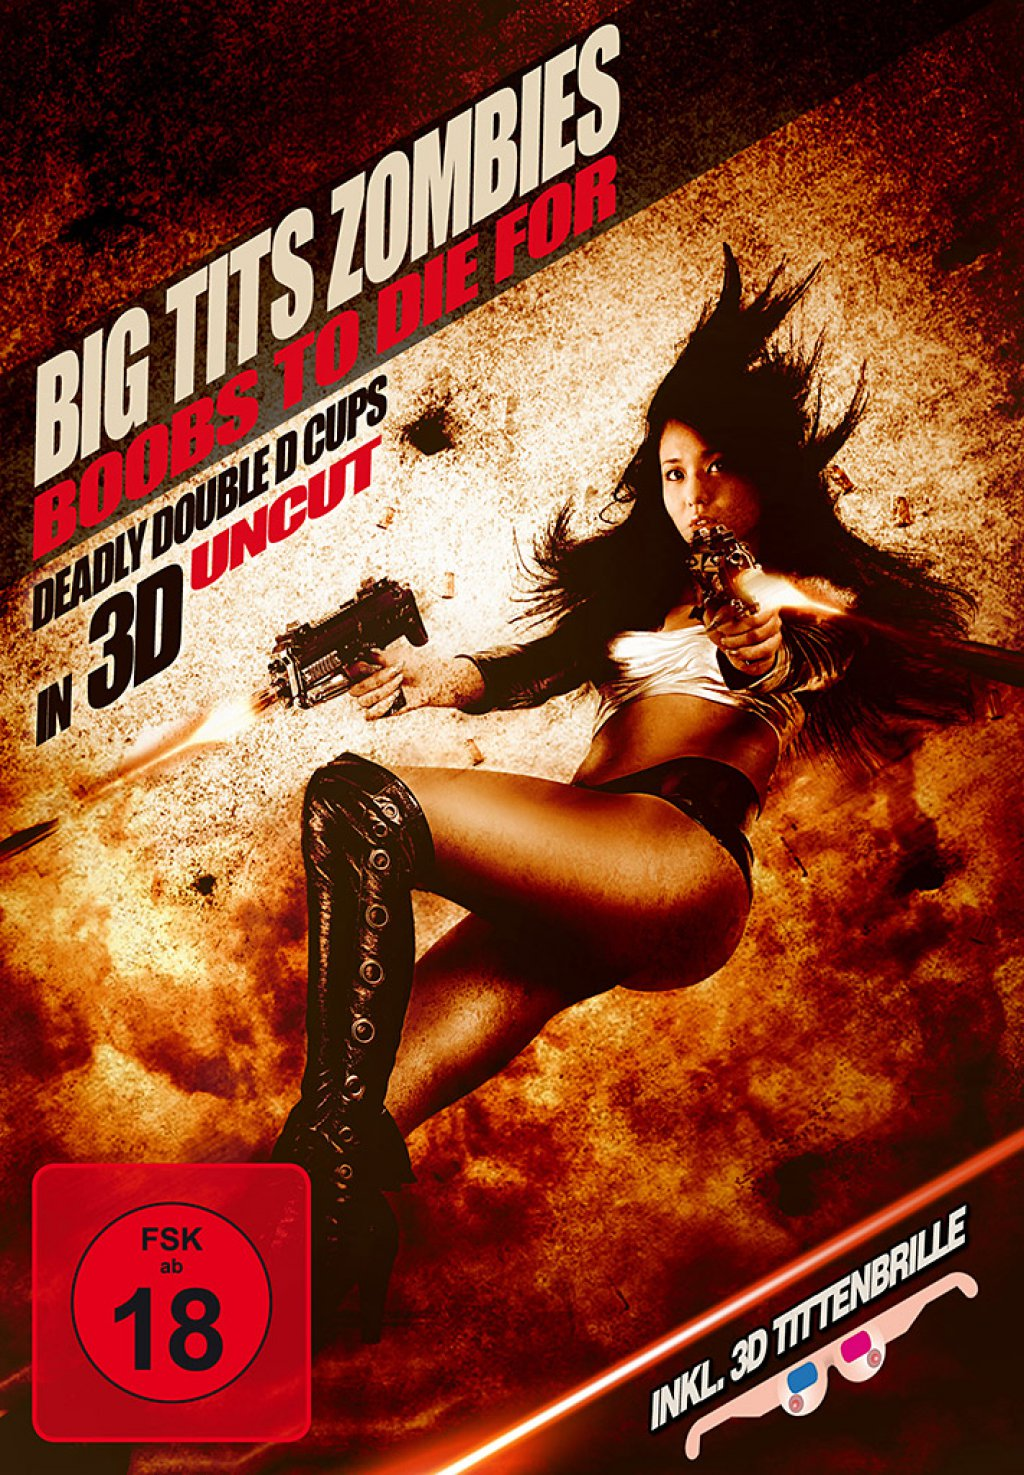 Big Tits Zombies - 3D (DVD)